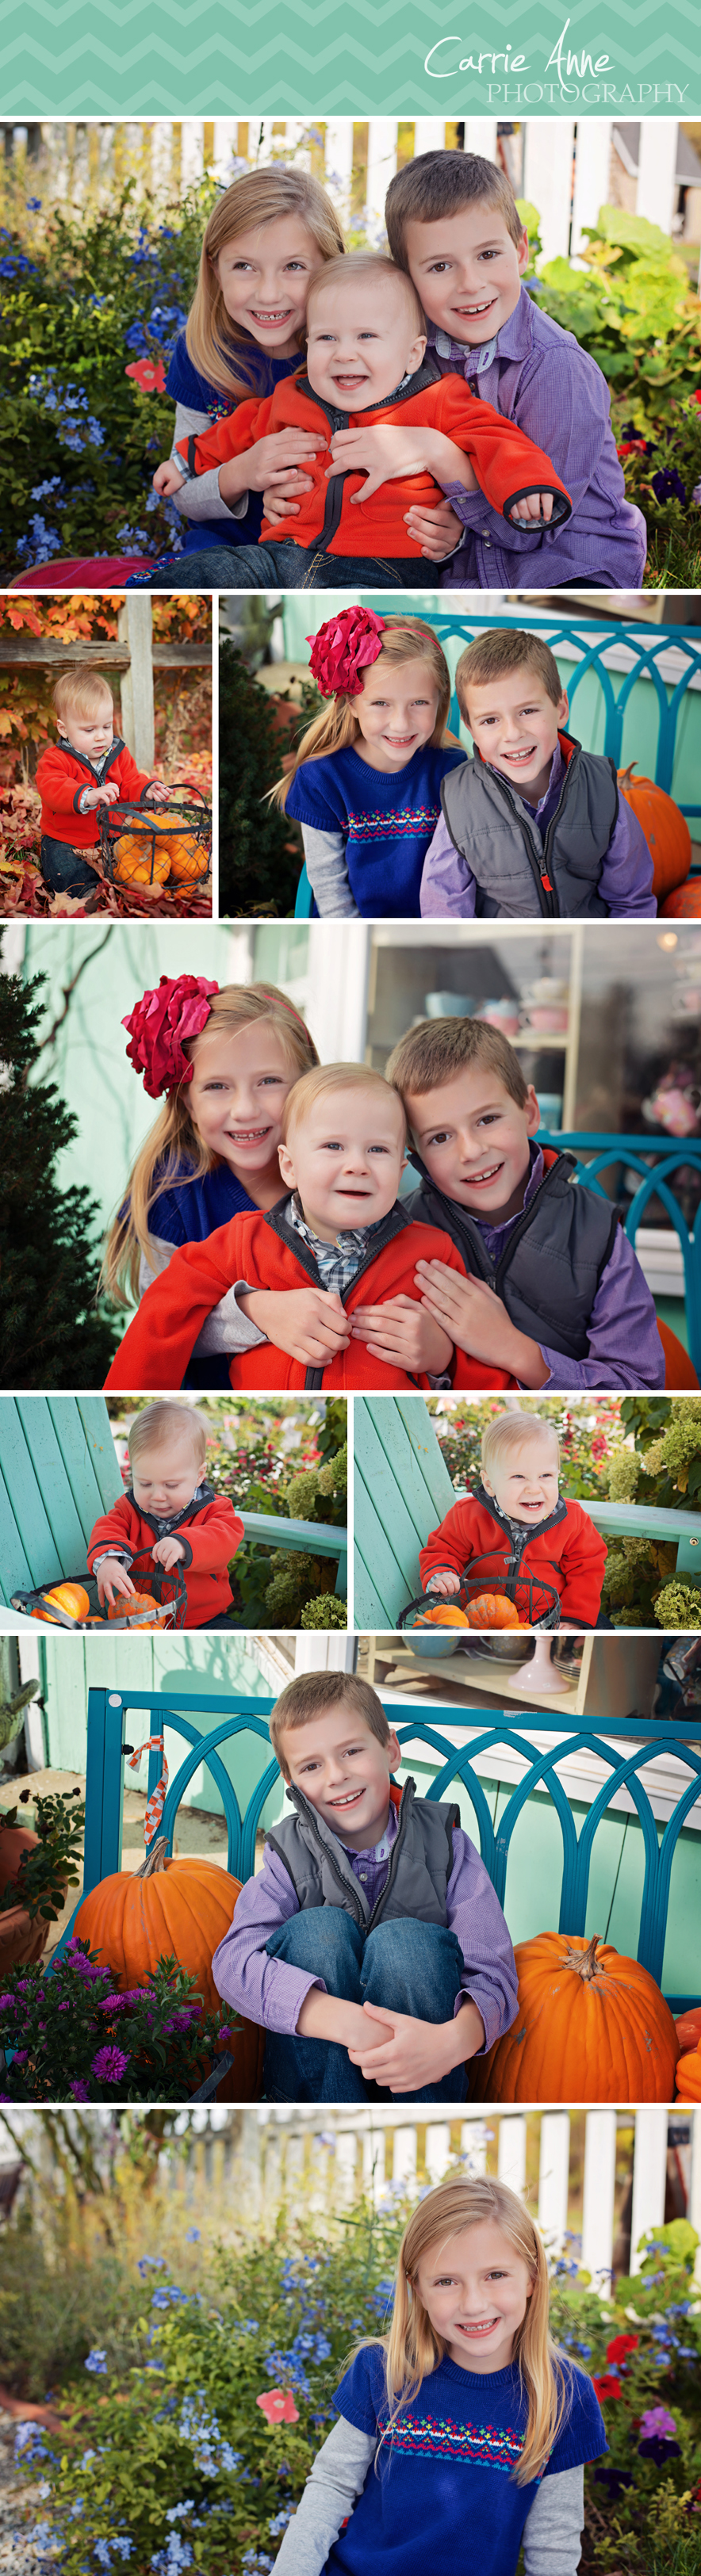 Colorful Family and Children Photography by Carrie Anne Photography